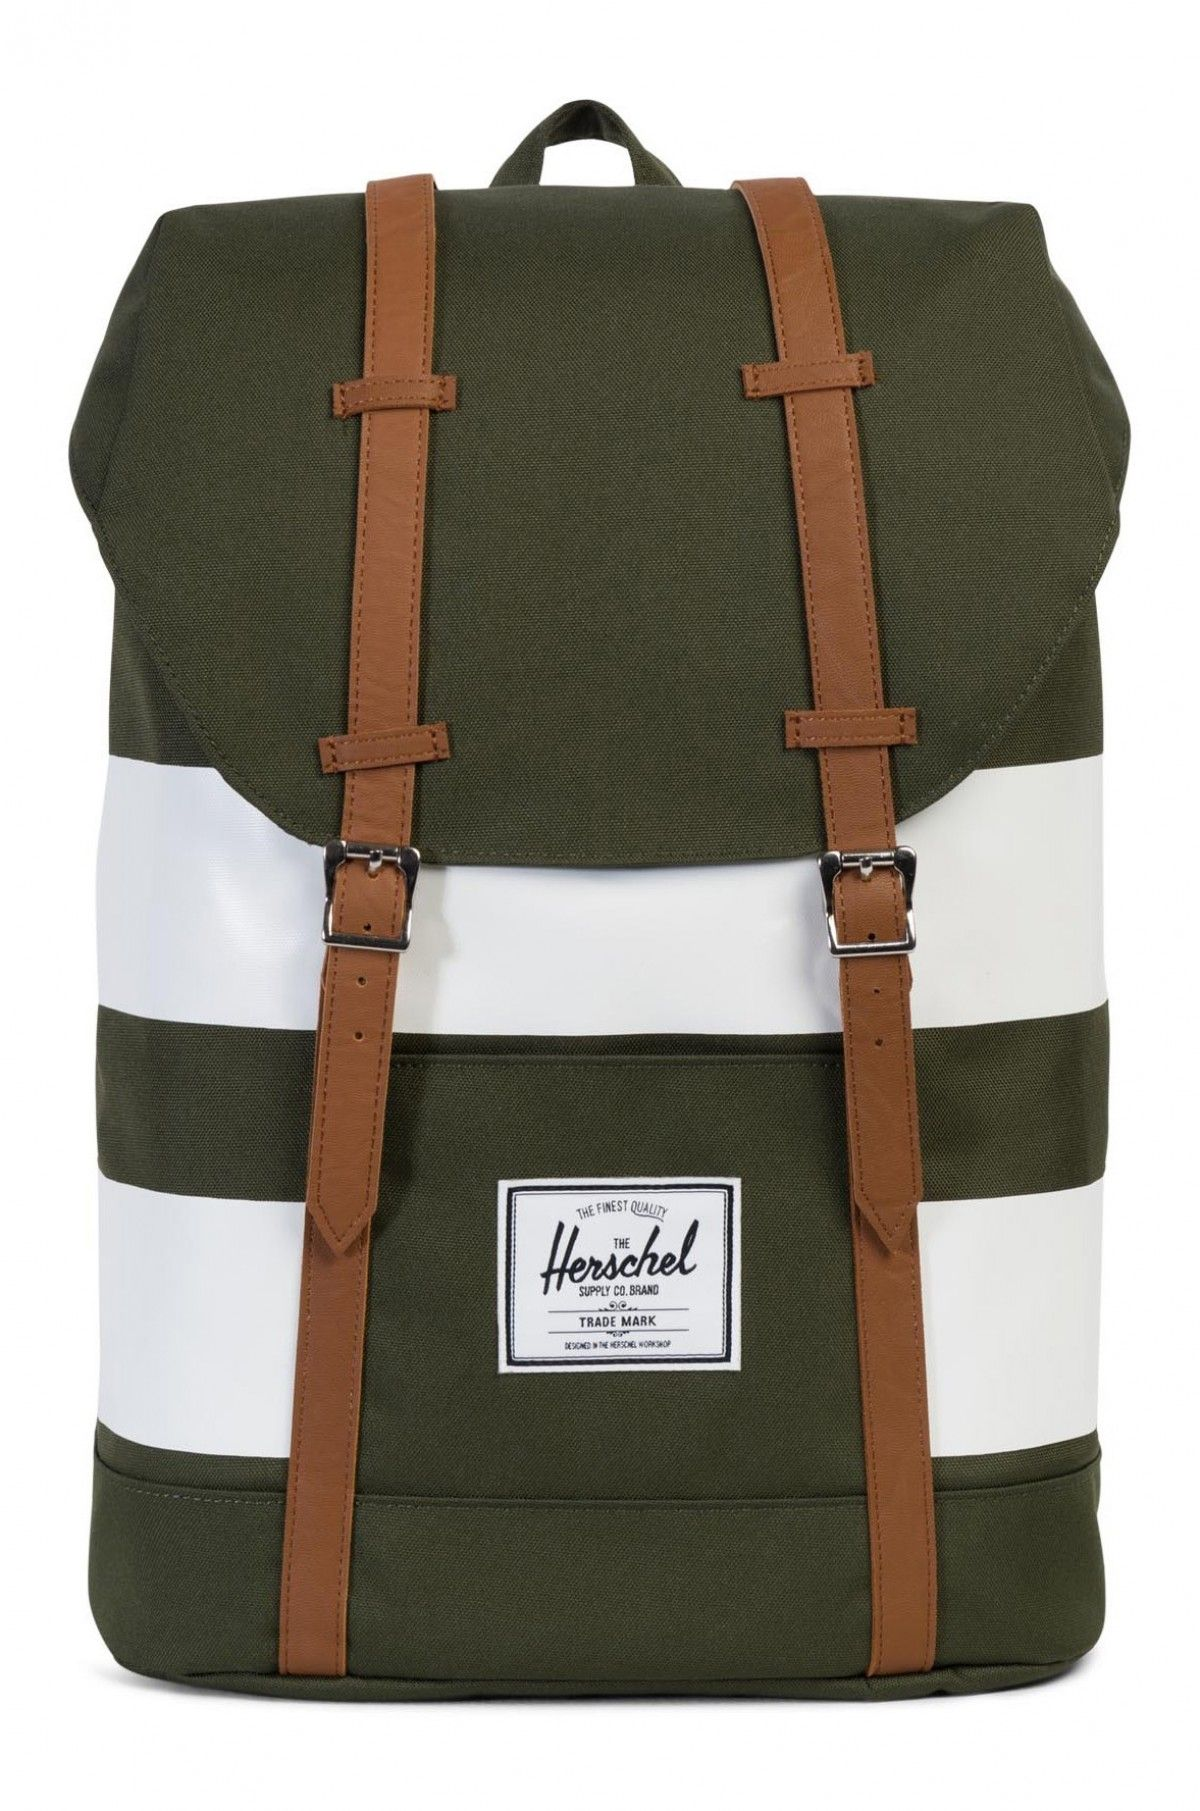 1c6fa2513d5 Herschel Retreat Backpack 600D Forest Night Rugby Stripe   Herschel    Pinterest   Herschel, Herschel supply and Herschel supply co